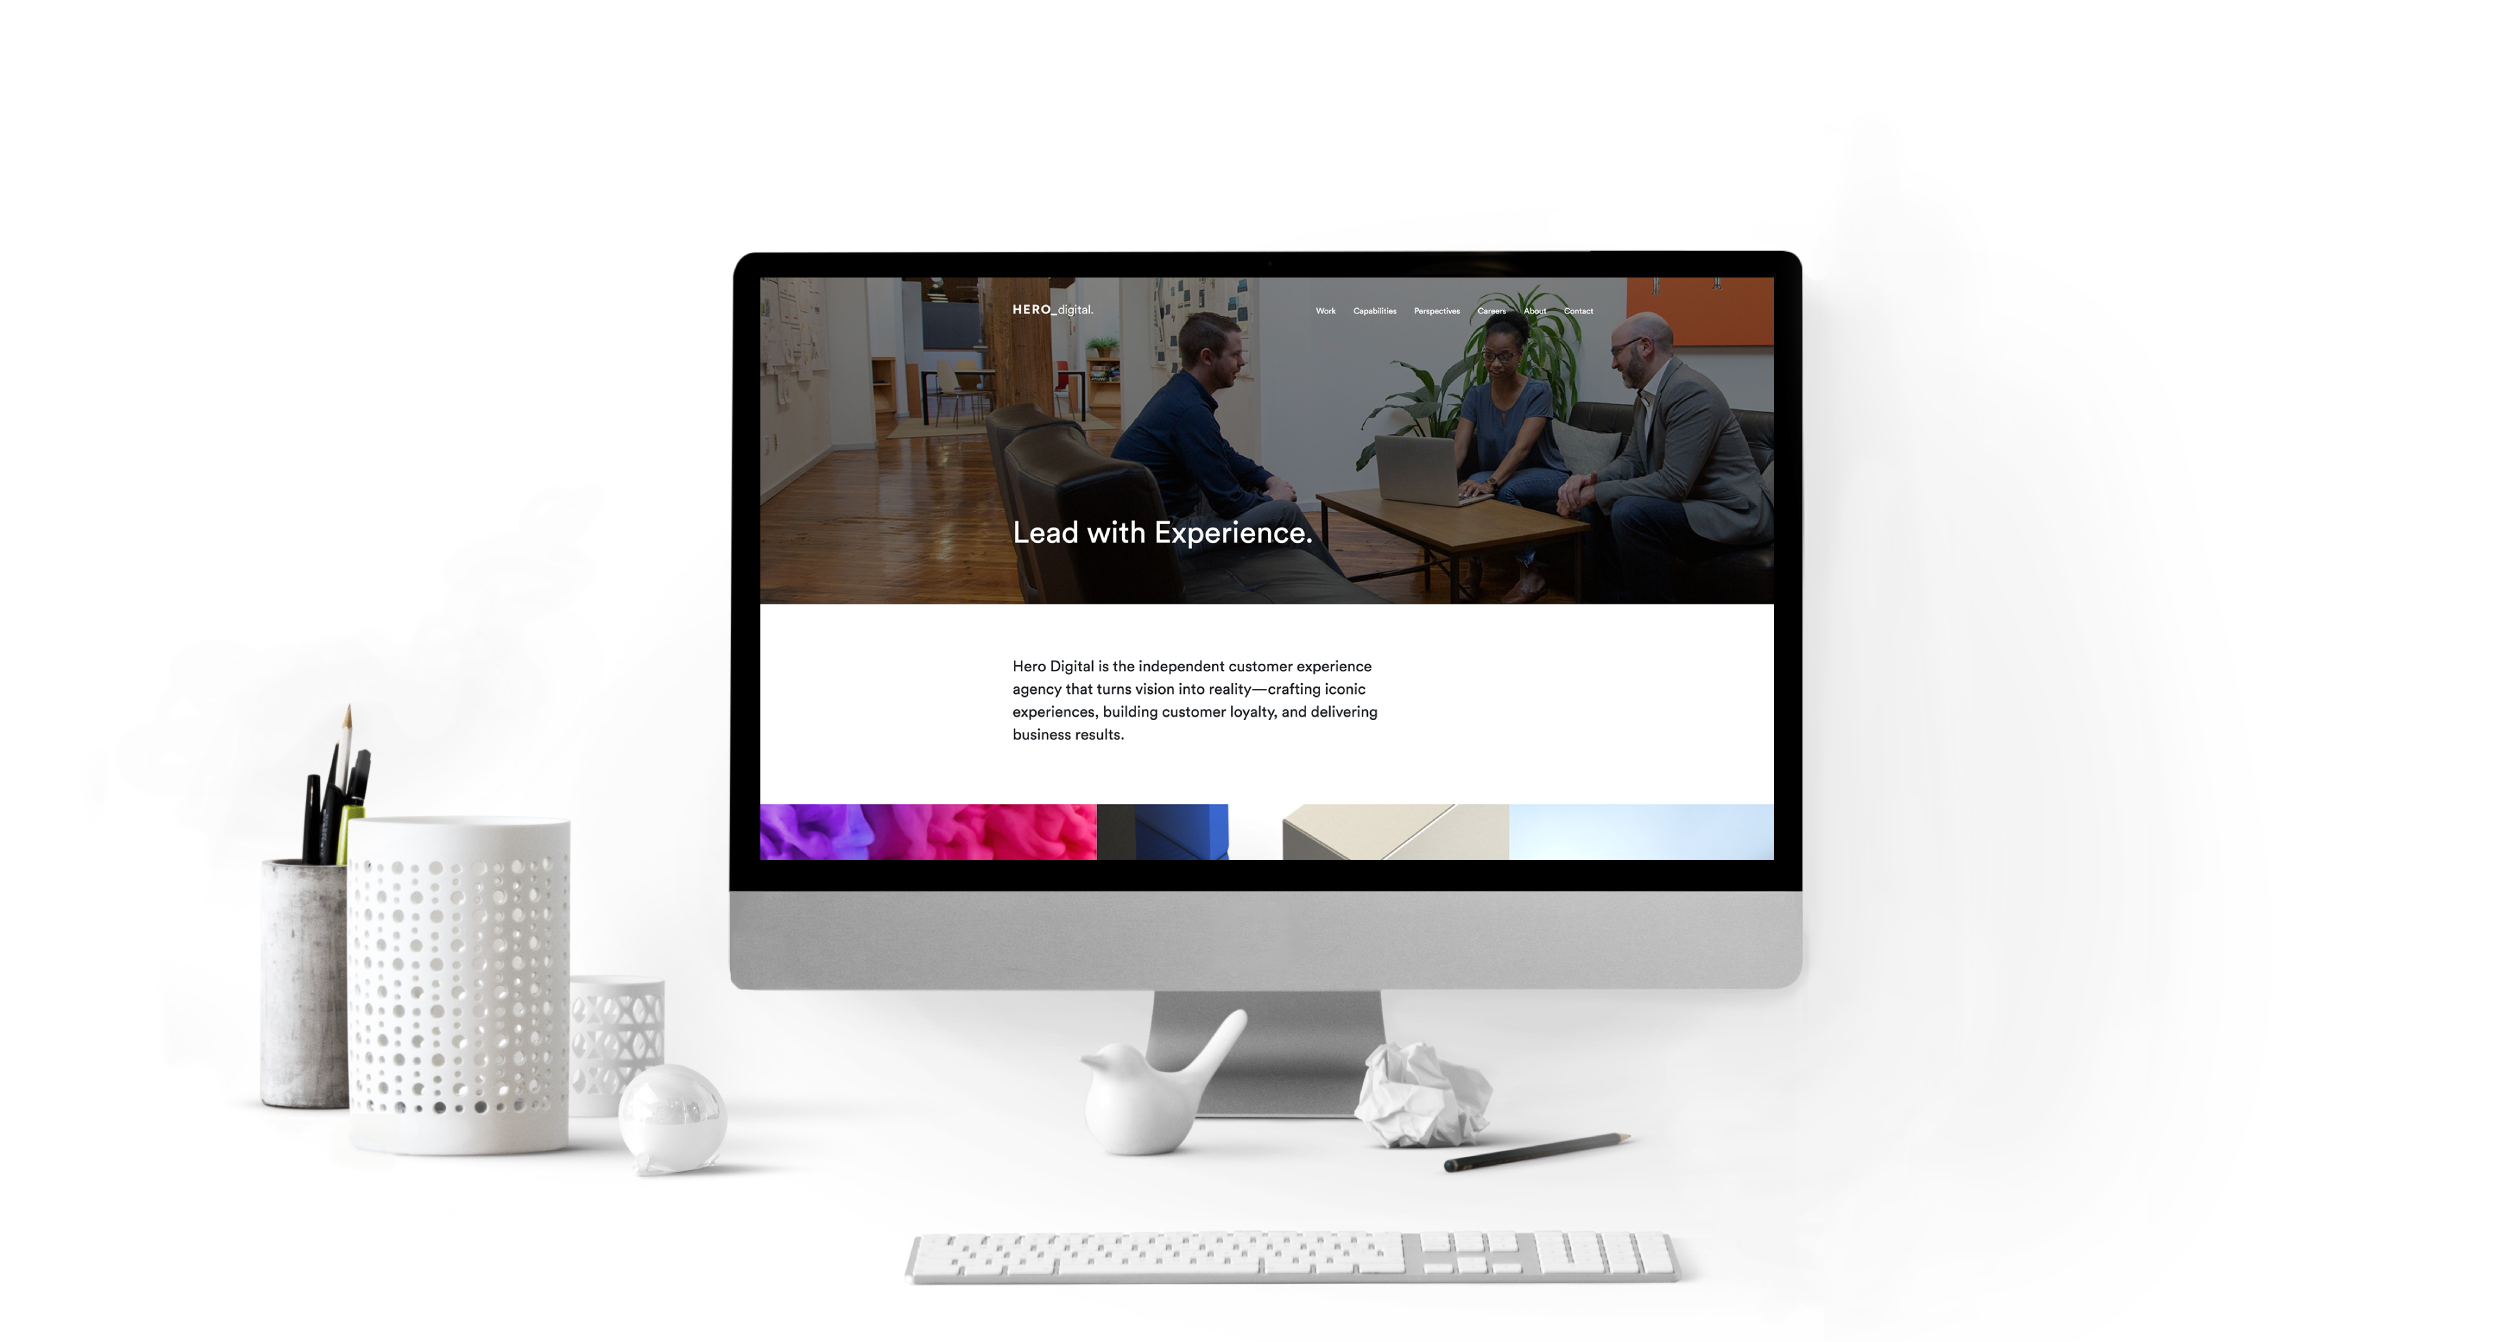 Hero Digital, the independent customer experience agency